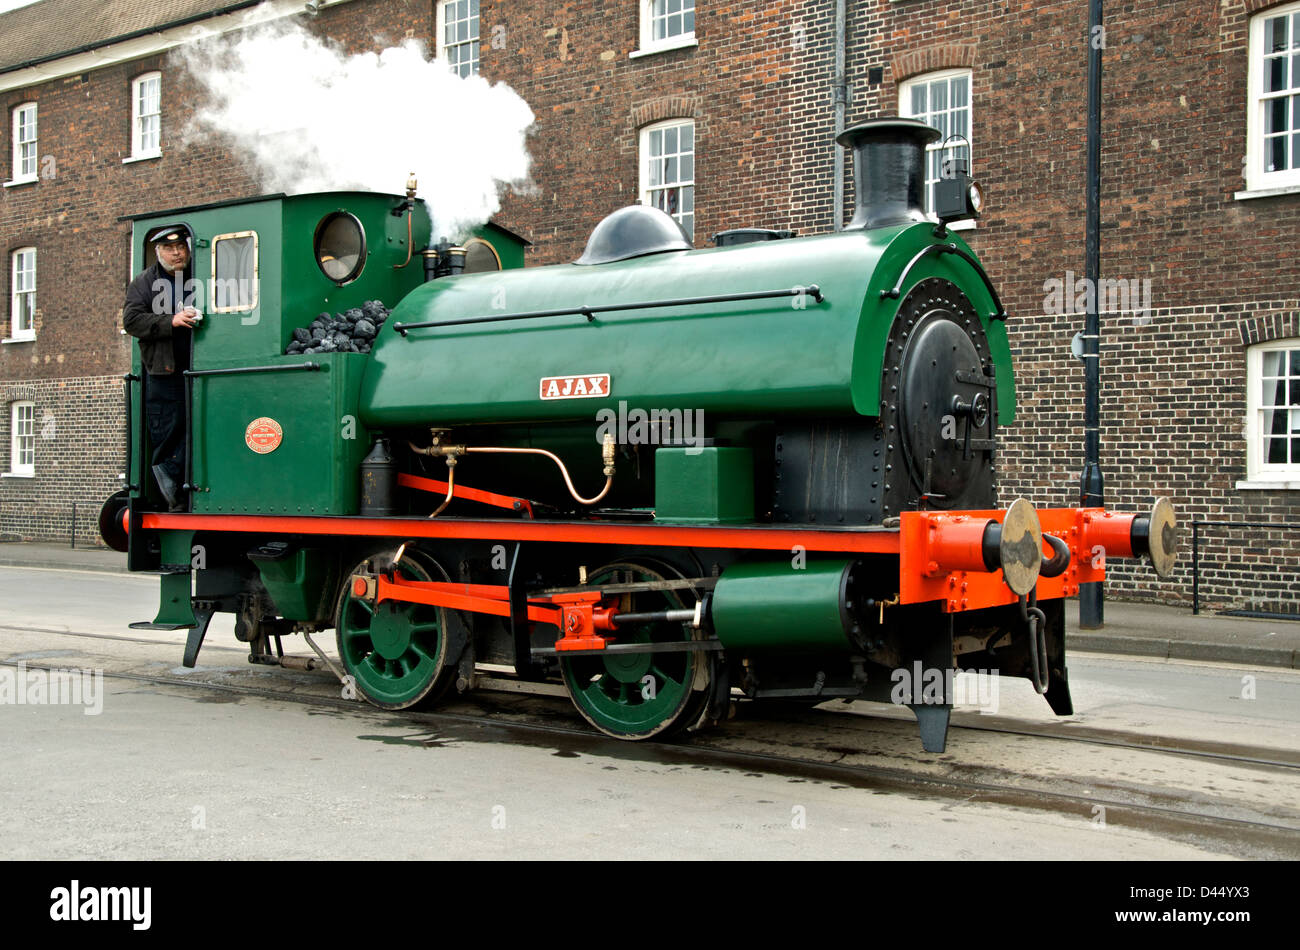 Ajax, Saddle Tank steam locomotive with driver, working at Chatham Historic Dockyard - Stock Image